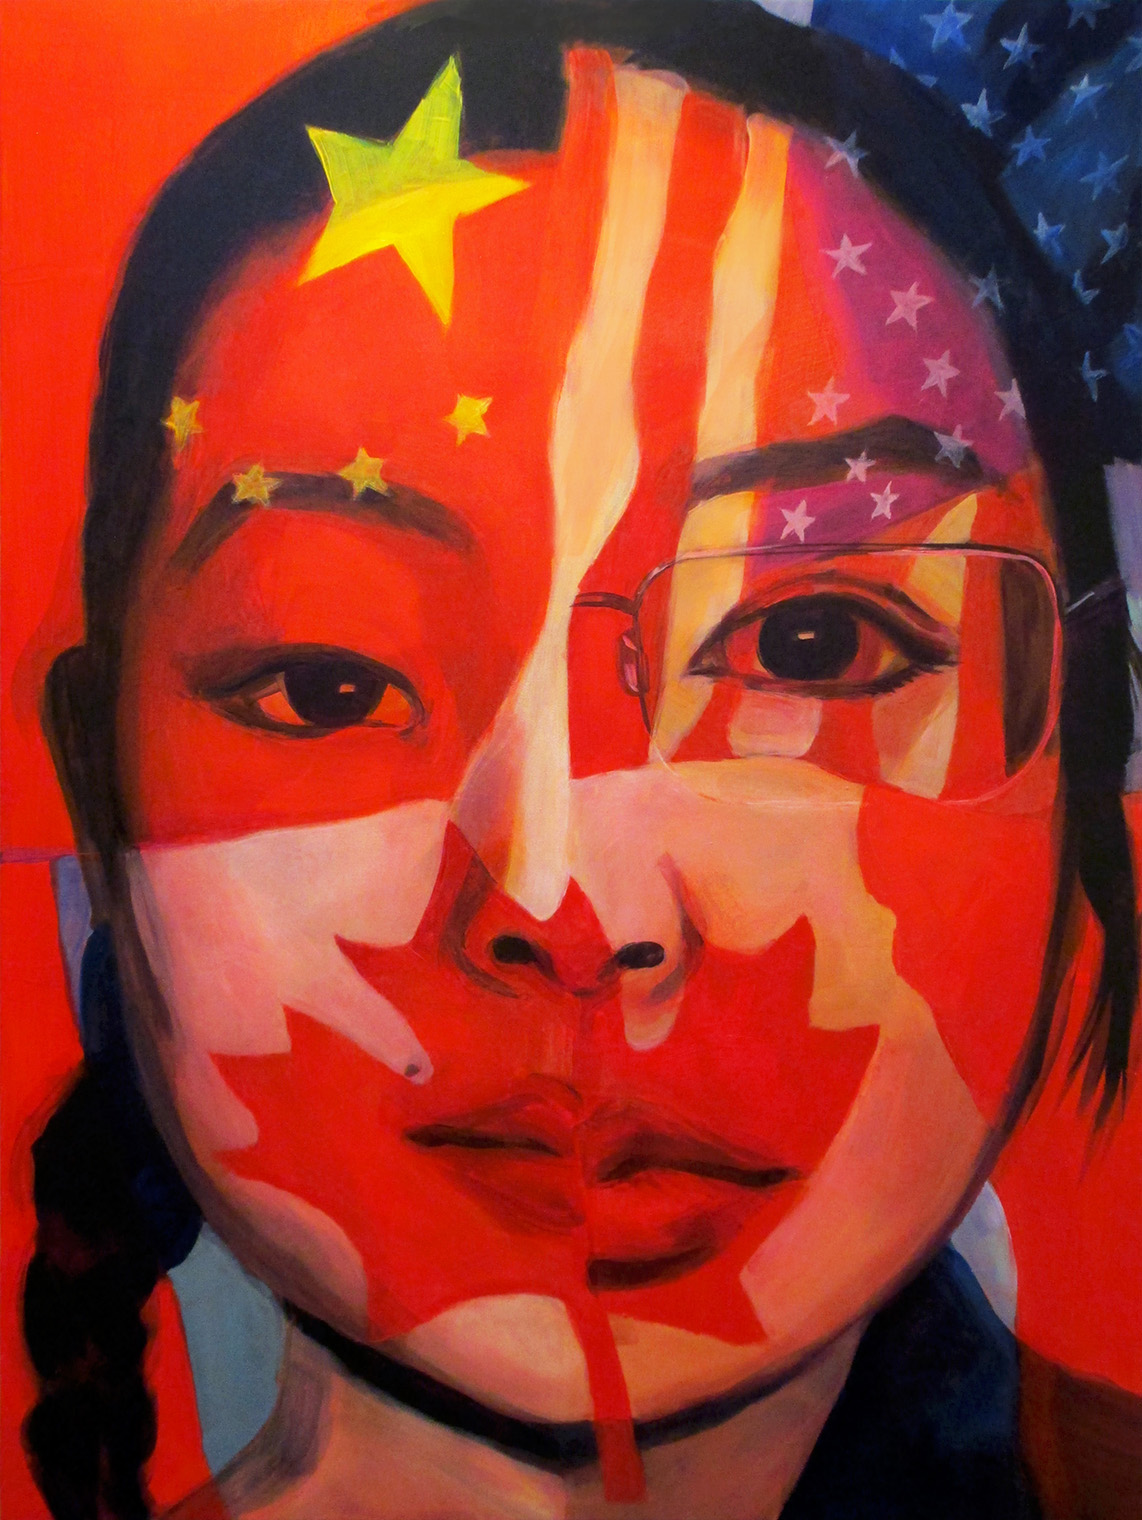 Fangjun (Rosemary) Ye - Honorable MentionRosemary Ye is an artist who graduated from the San Francisco Art Institute with a BFA in painting. As someone who rarely does self-portraiture, she wanted to create a painting where it is much of a reflection on herself, where she came from and how the countries she reside in shape her cultural identity. She was born in China, moved to Canada with her parents when she was 4 years old and lived there until the start of her undergraduate degree. Rosemary has since then lived on both east and west coasts of the United States and studied abroad in France and Japan. Her main artwork explores various perspectives of contemporary celebrity culture through portraiture and is prominently inspired by K-pop culture —which is part of the ongoing global phenomenon of the Korean Wave. Currently, she has several new series of artworks in progress.https://www.artist-rye.com/